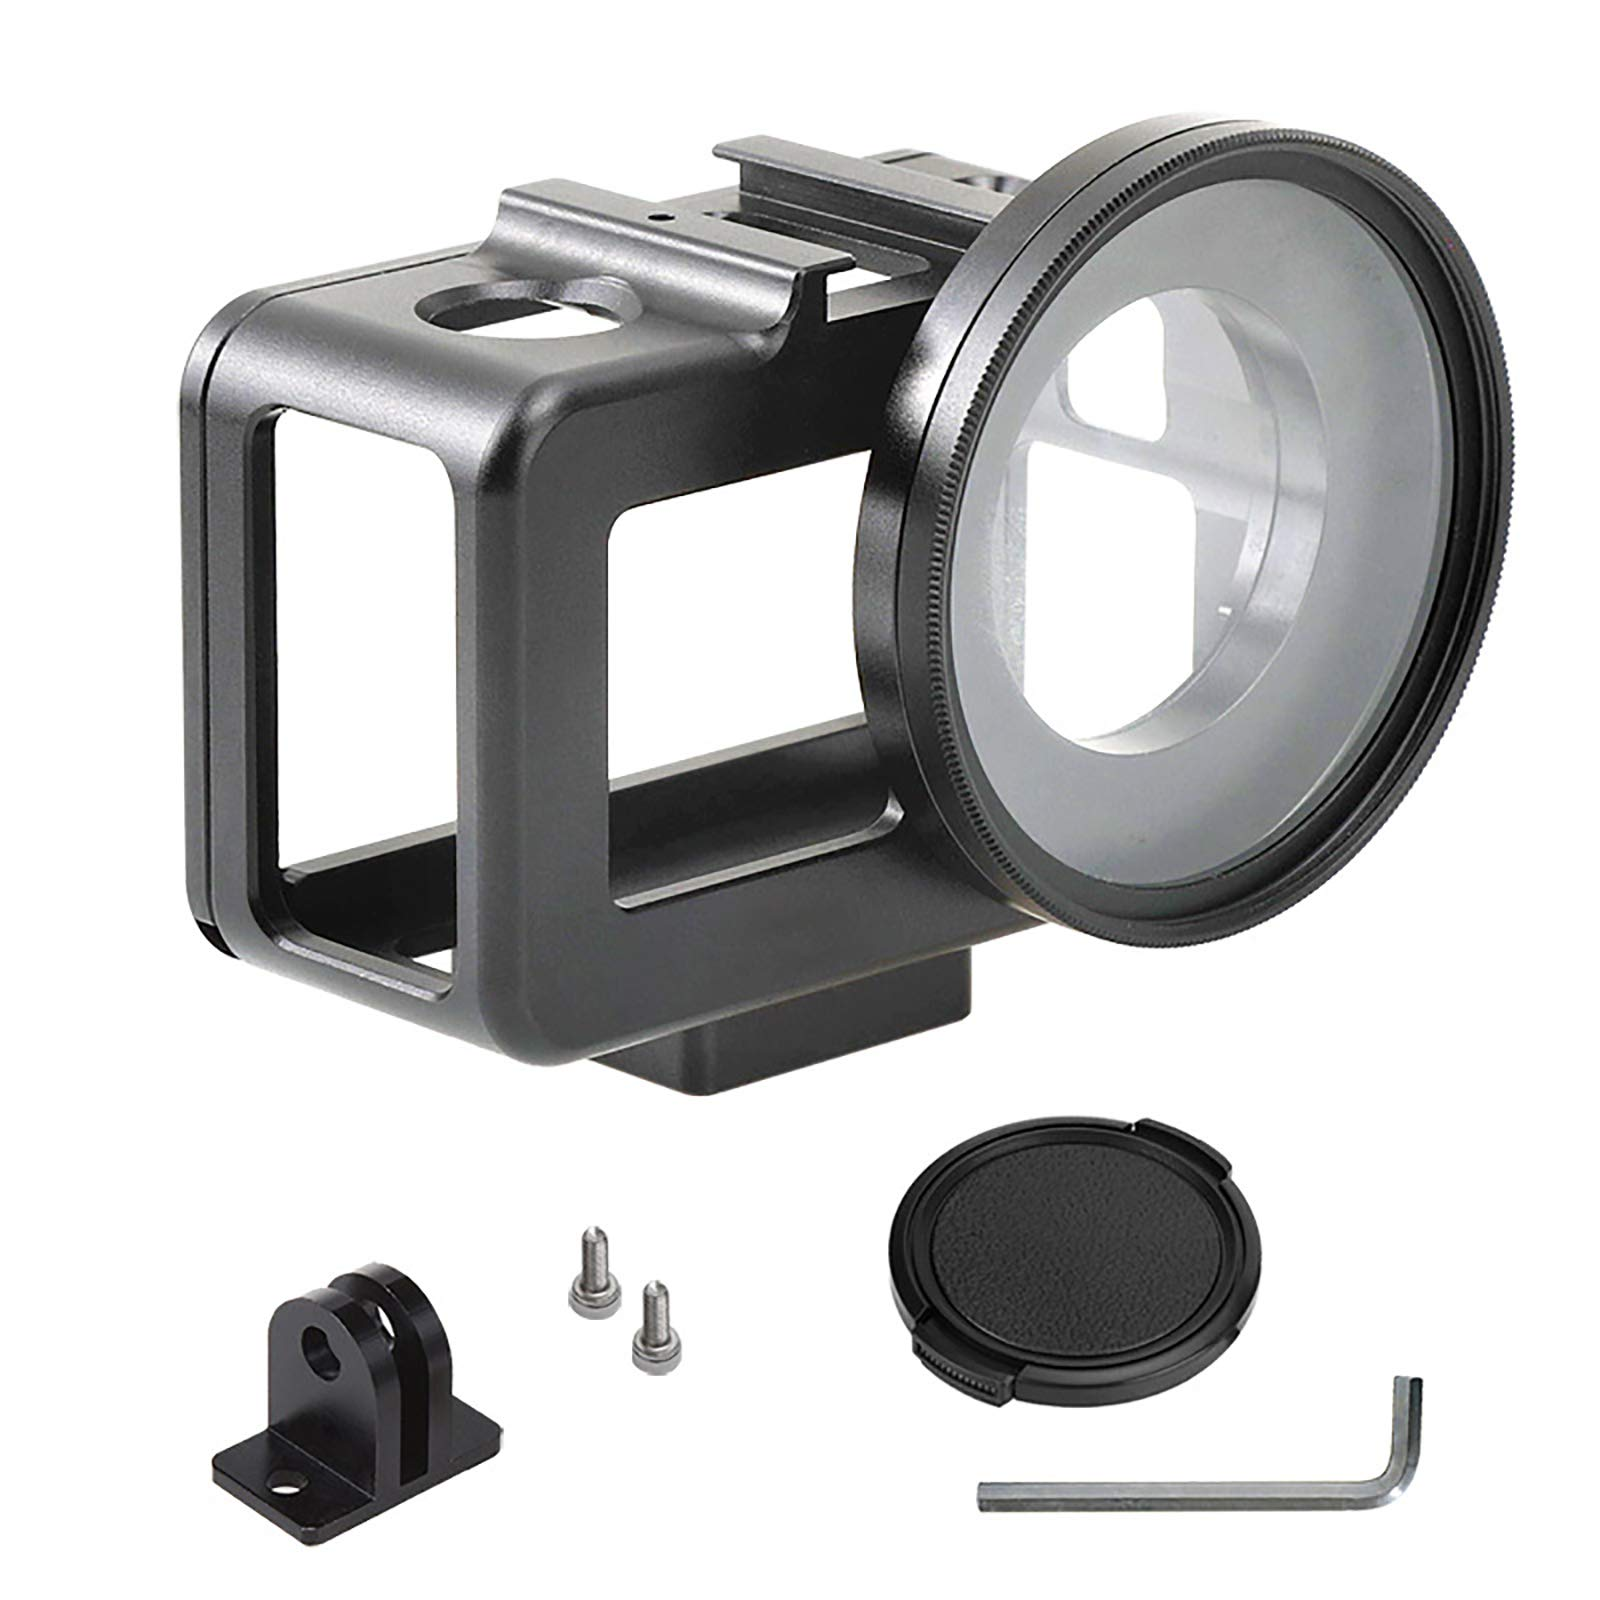 SHEAWA Protection Frame Cage Case with 52mm UV Lens and Hot Shoe for DJI Osmo Action Camera